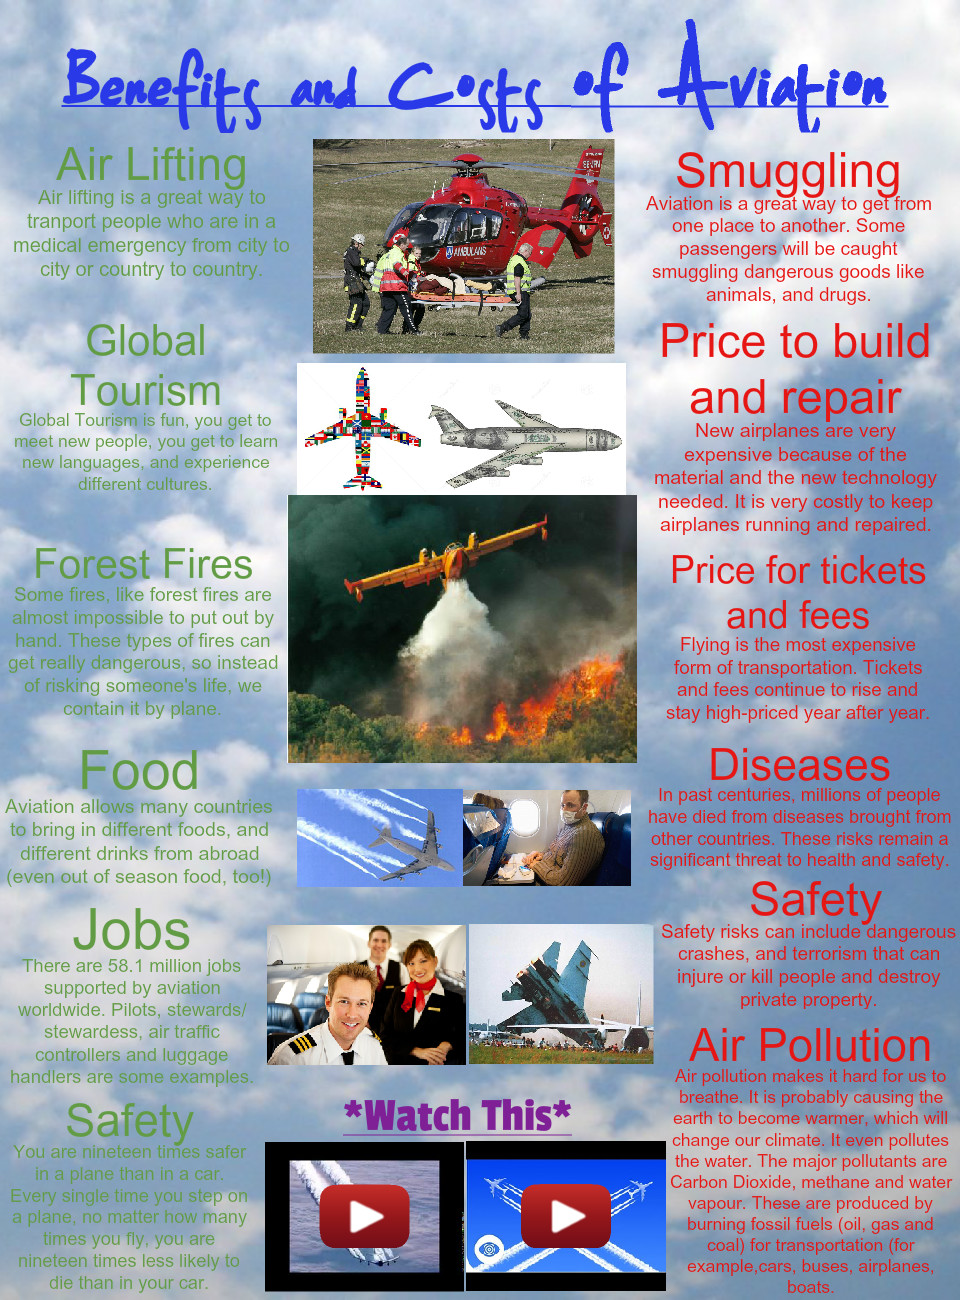 Benefits And Costs Of Aviation